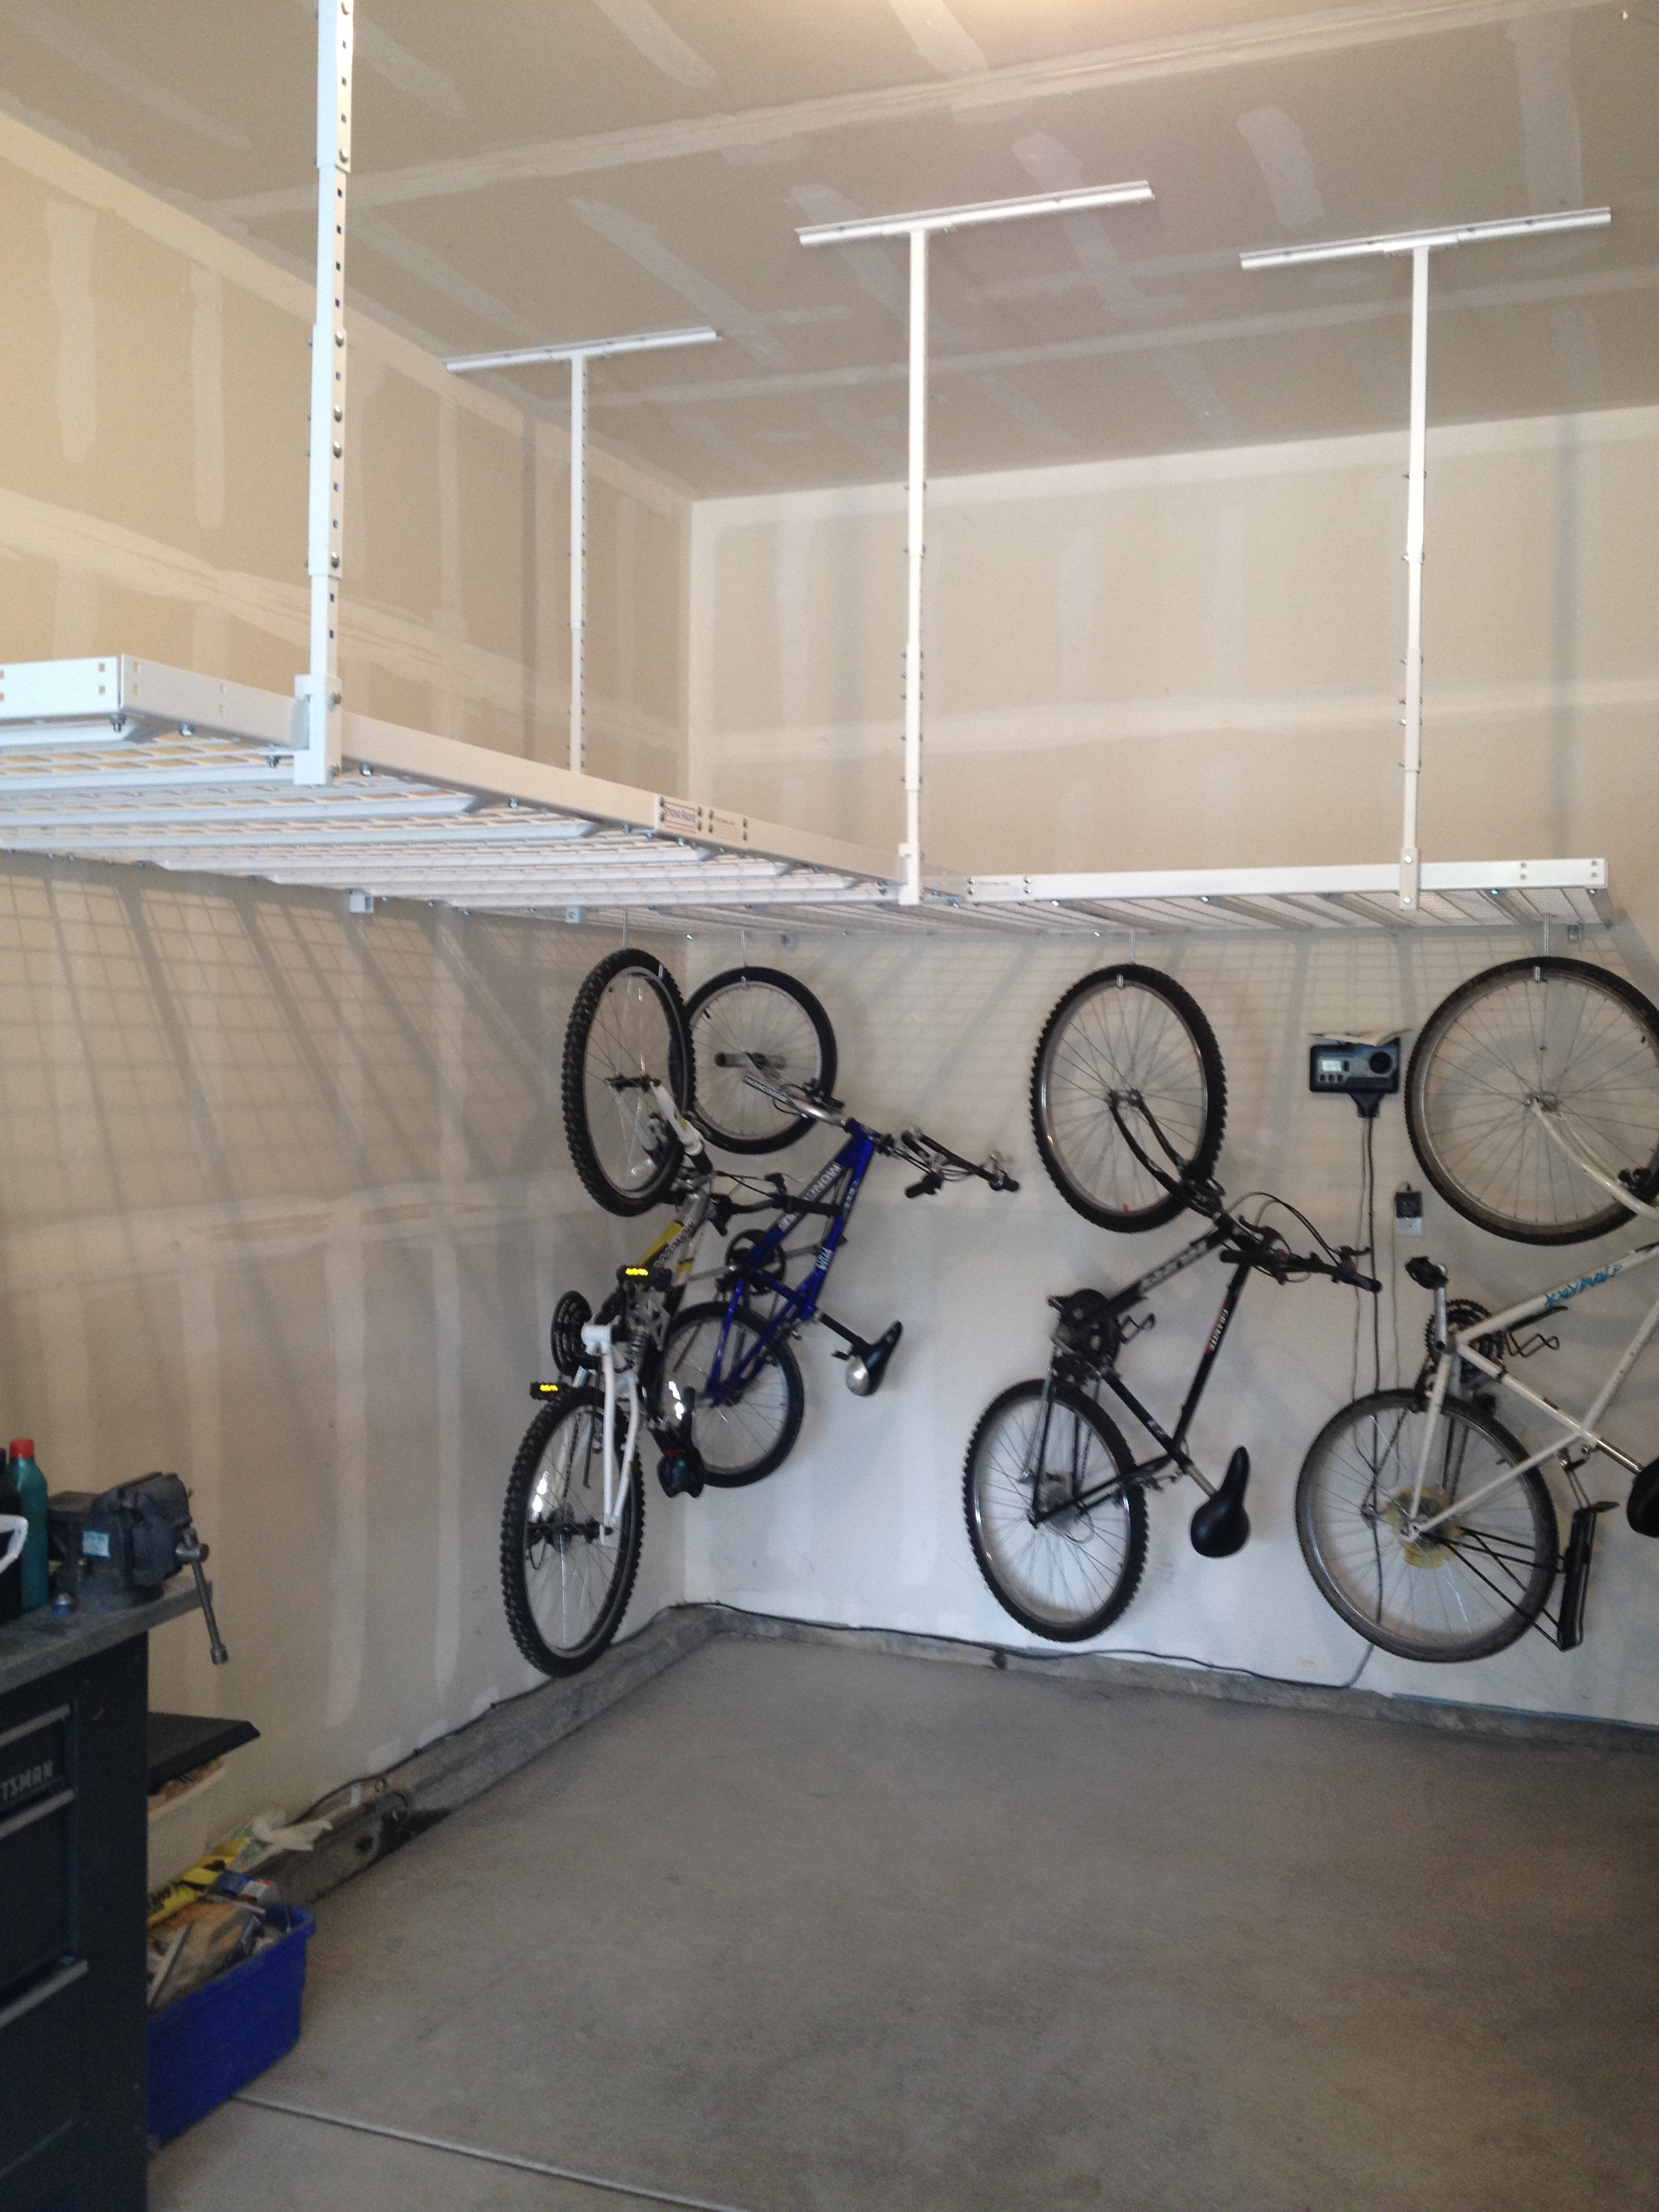 Adjustable Garage Overhead Storage Denver